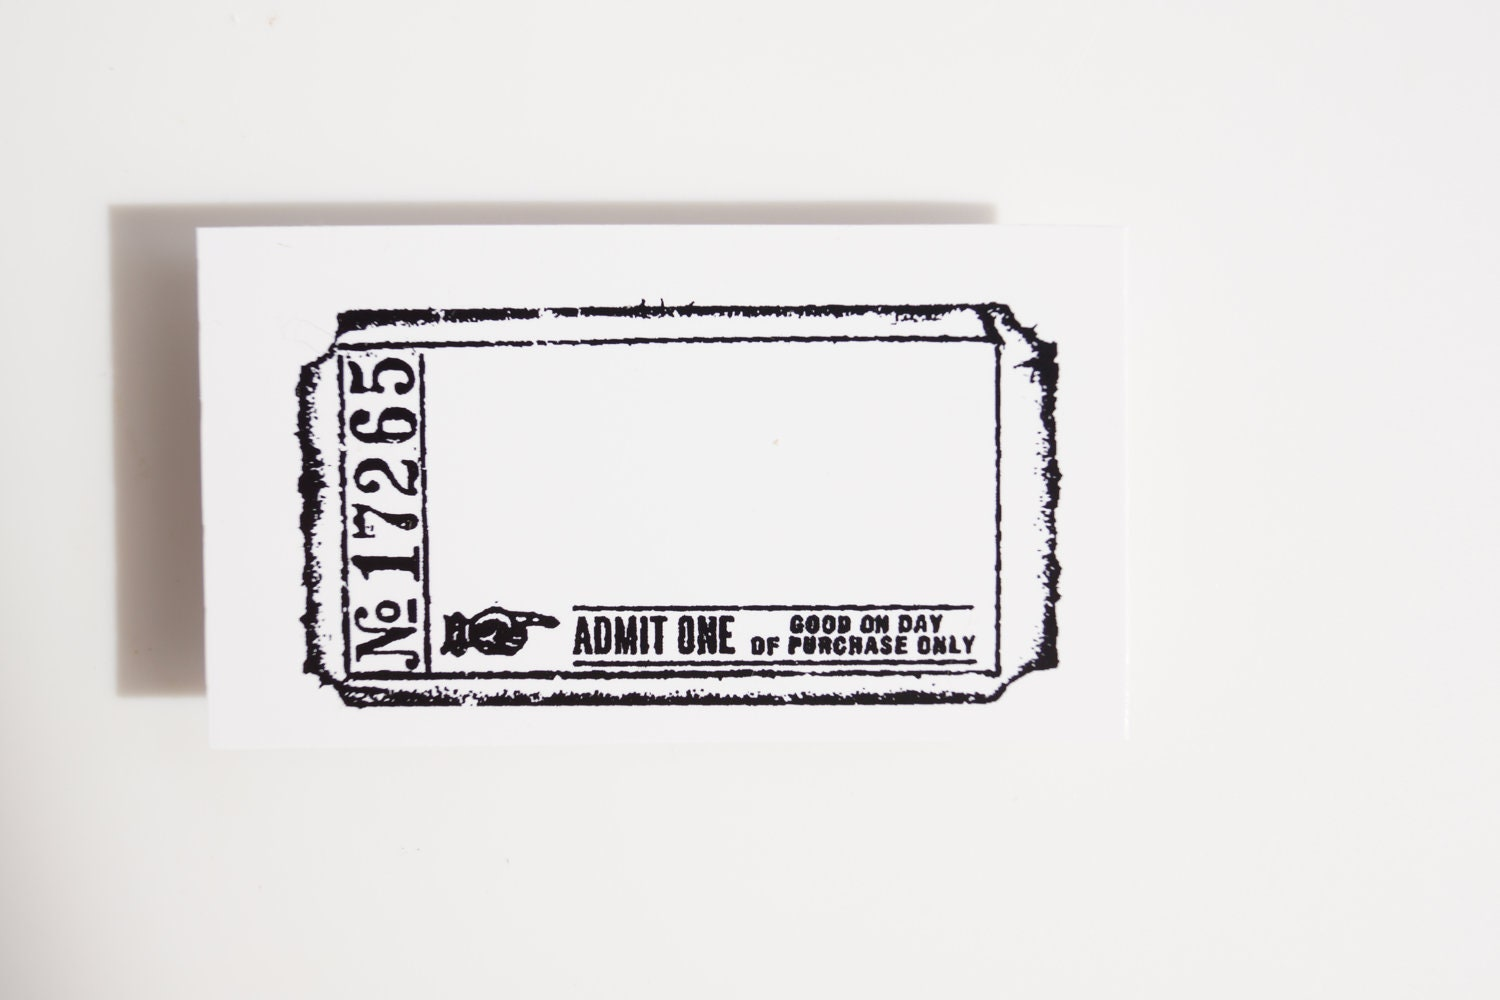 Blank Admit One Ticket Stamp Rubber Cling Mounted By